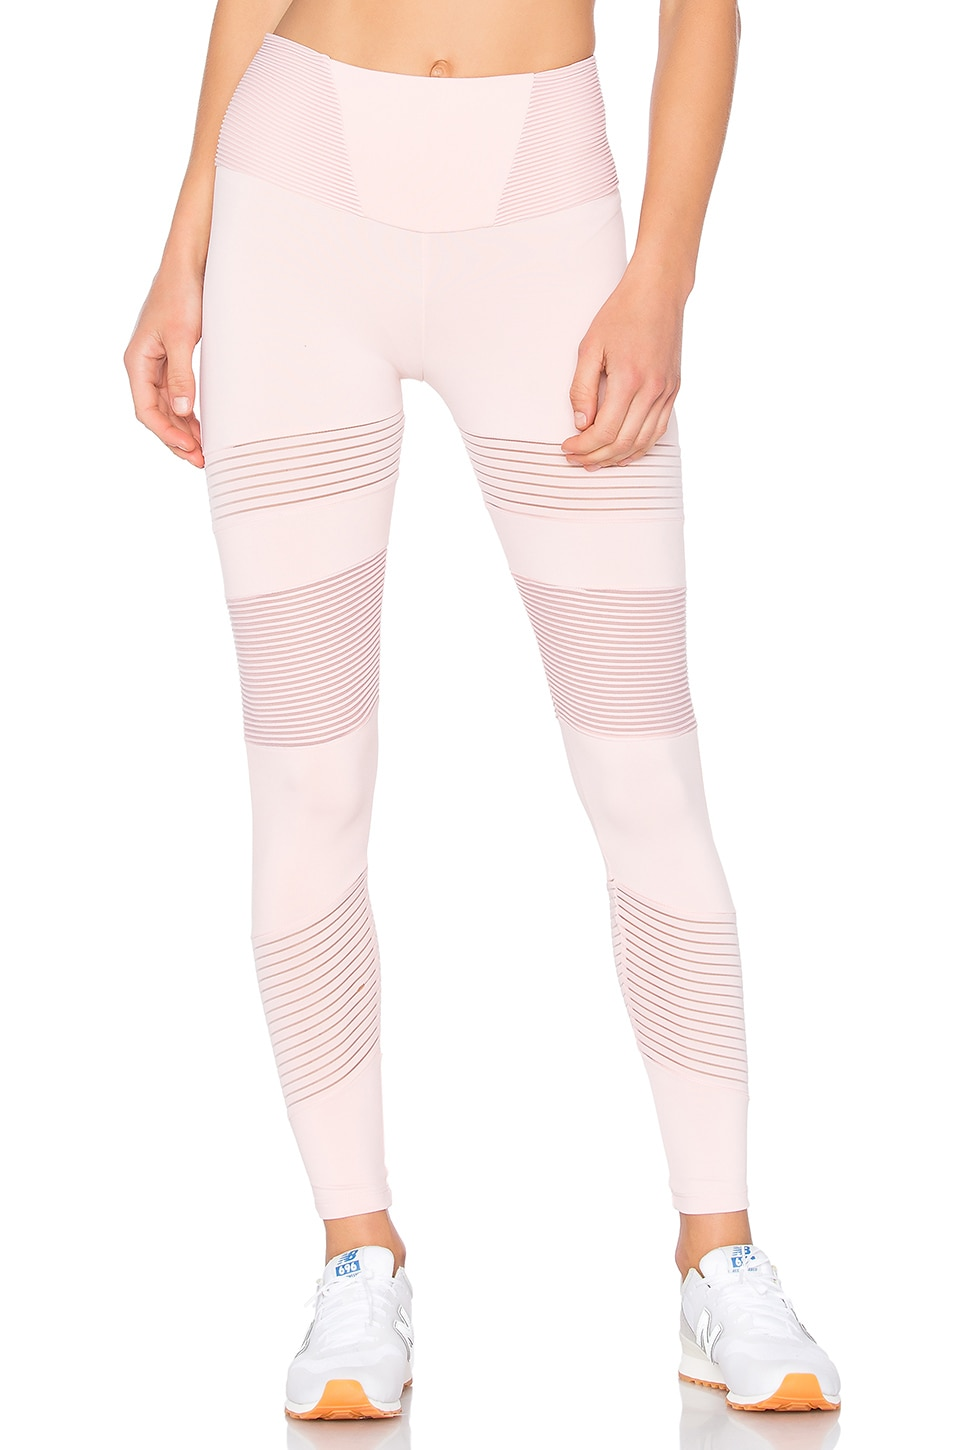 BELOFORTE Stripe Block Legging in Blush